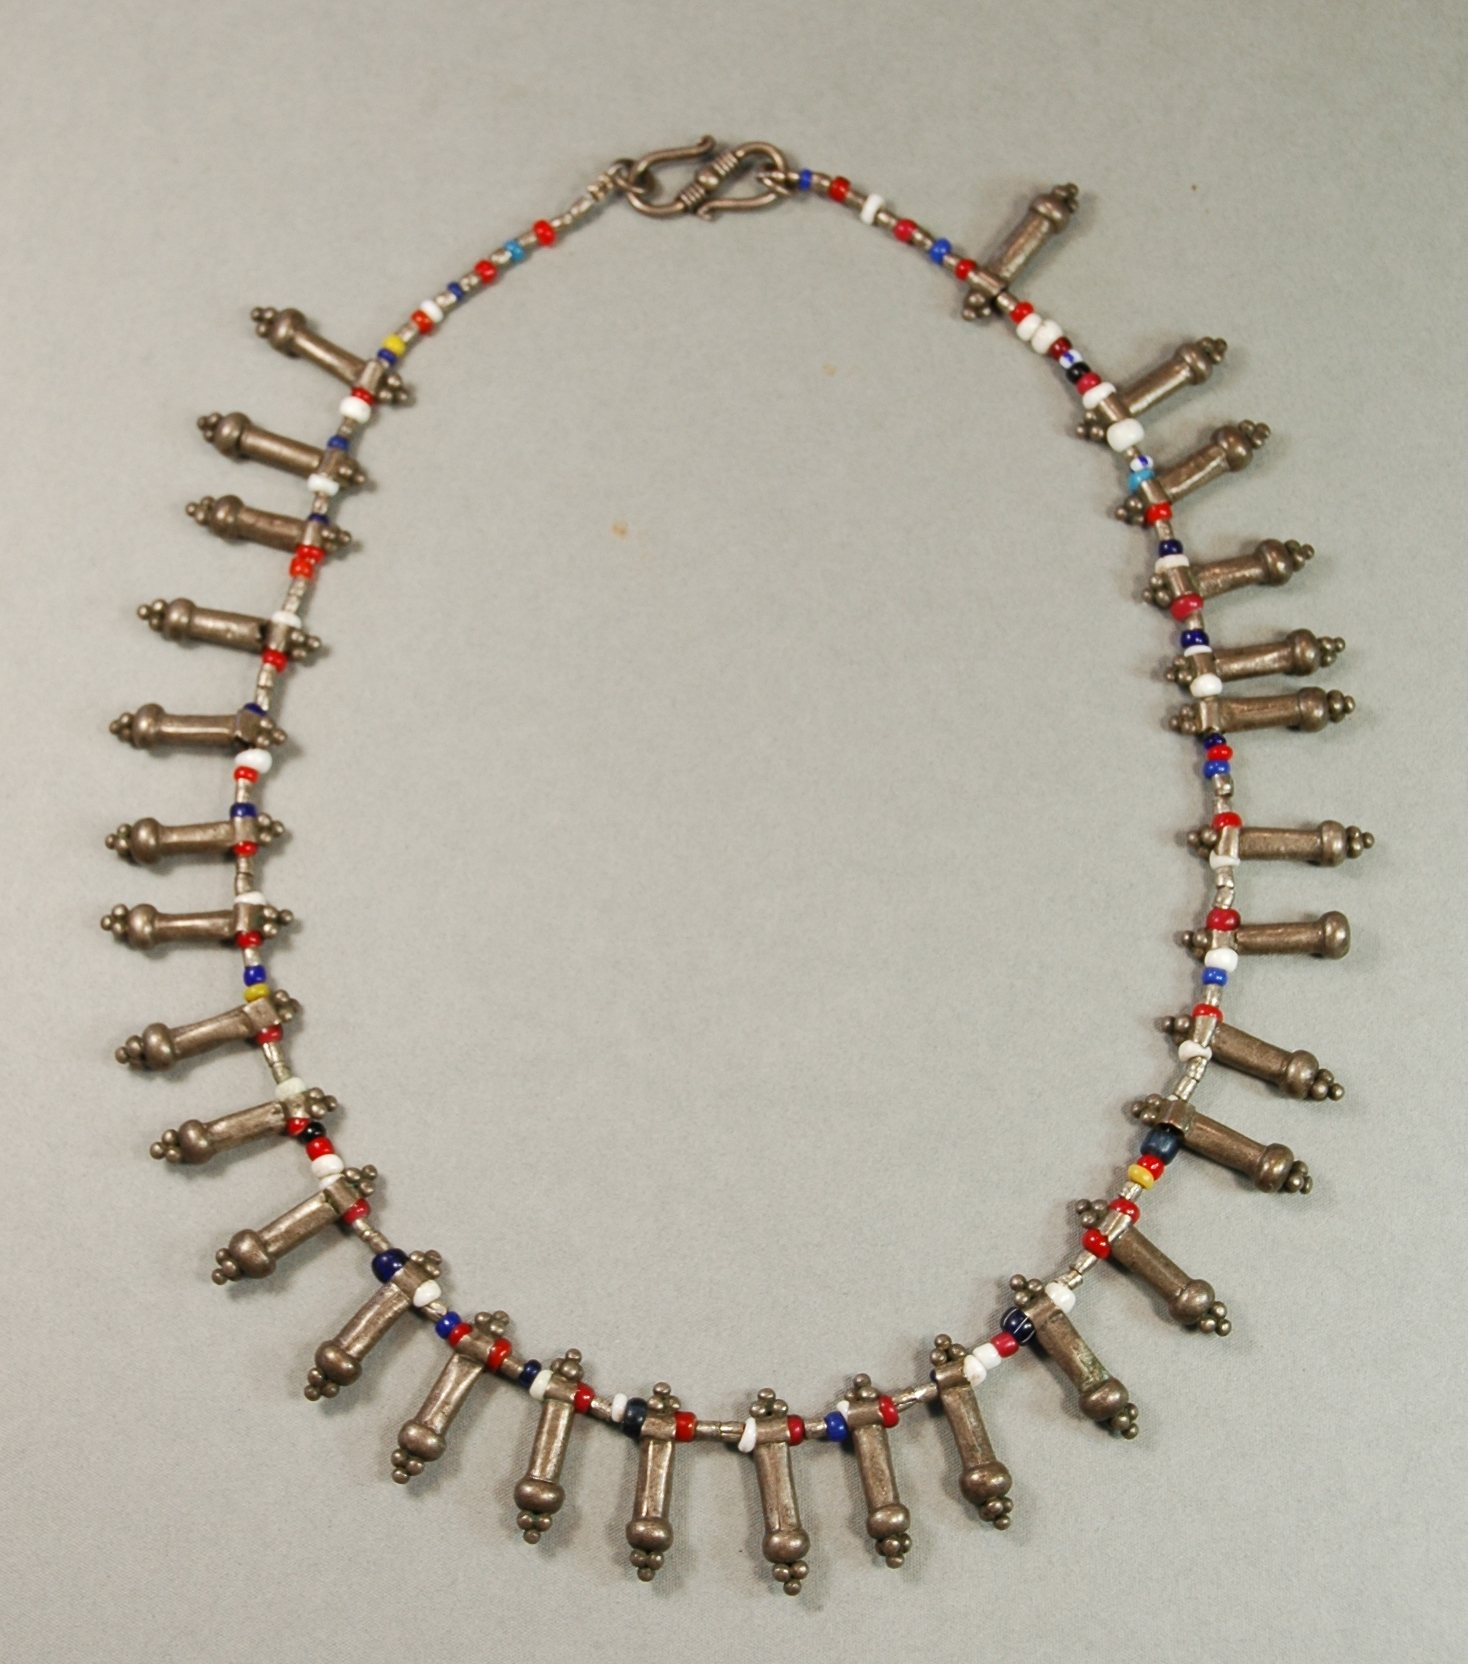 Wollo Oromo necklace